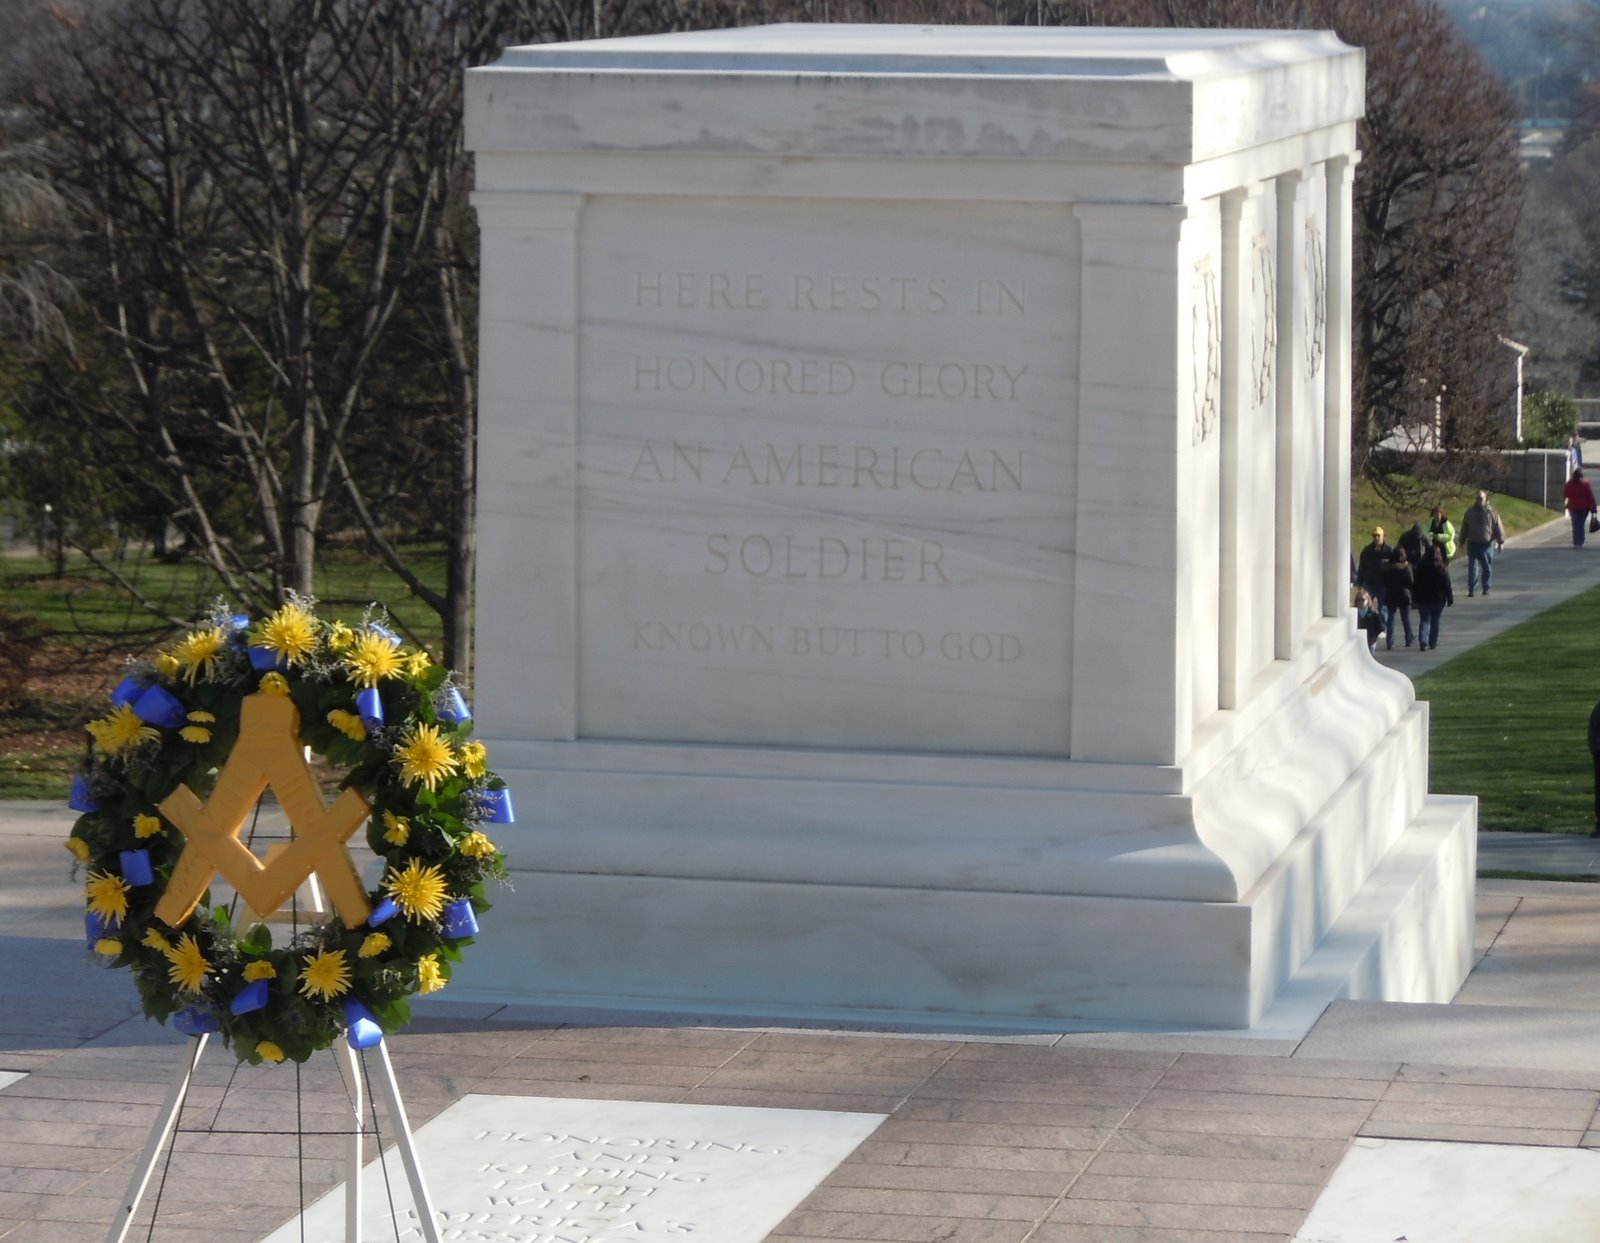 93716246e Acouple weeks ago I was the Guest of the Grand Lodge of Waswhington DC for  their annual communication. One of the events was to lay a wreath at the  Tomb of ...